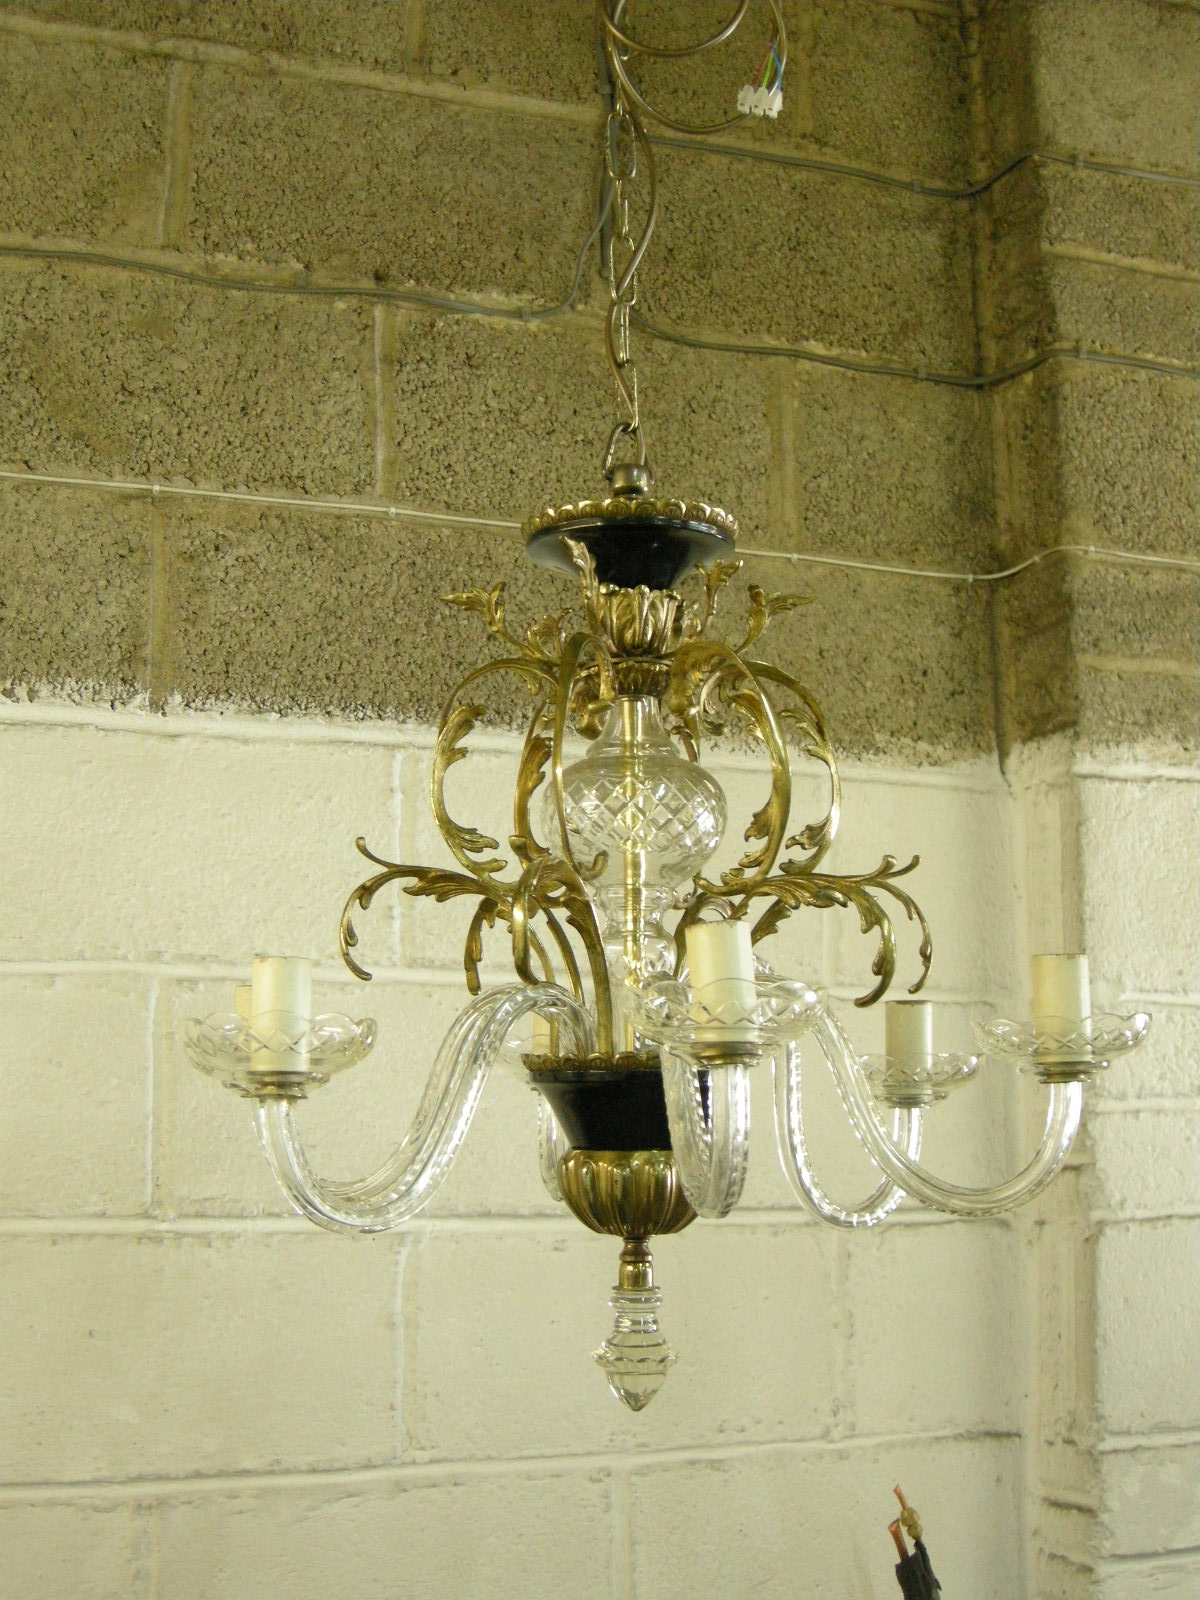 Antique Metals Chandelier Repairs Restoration Cleaning And Rewiring Chandeliers Glass Brass Before After